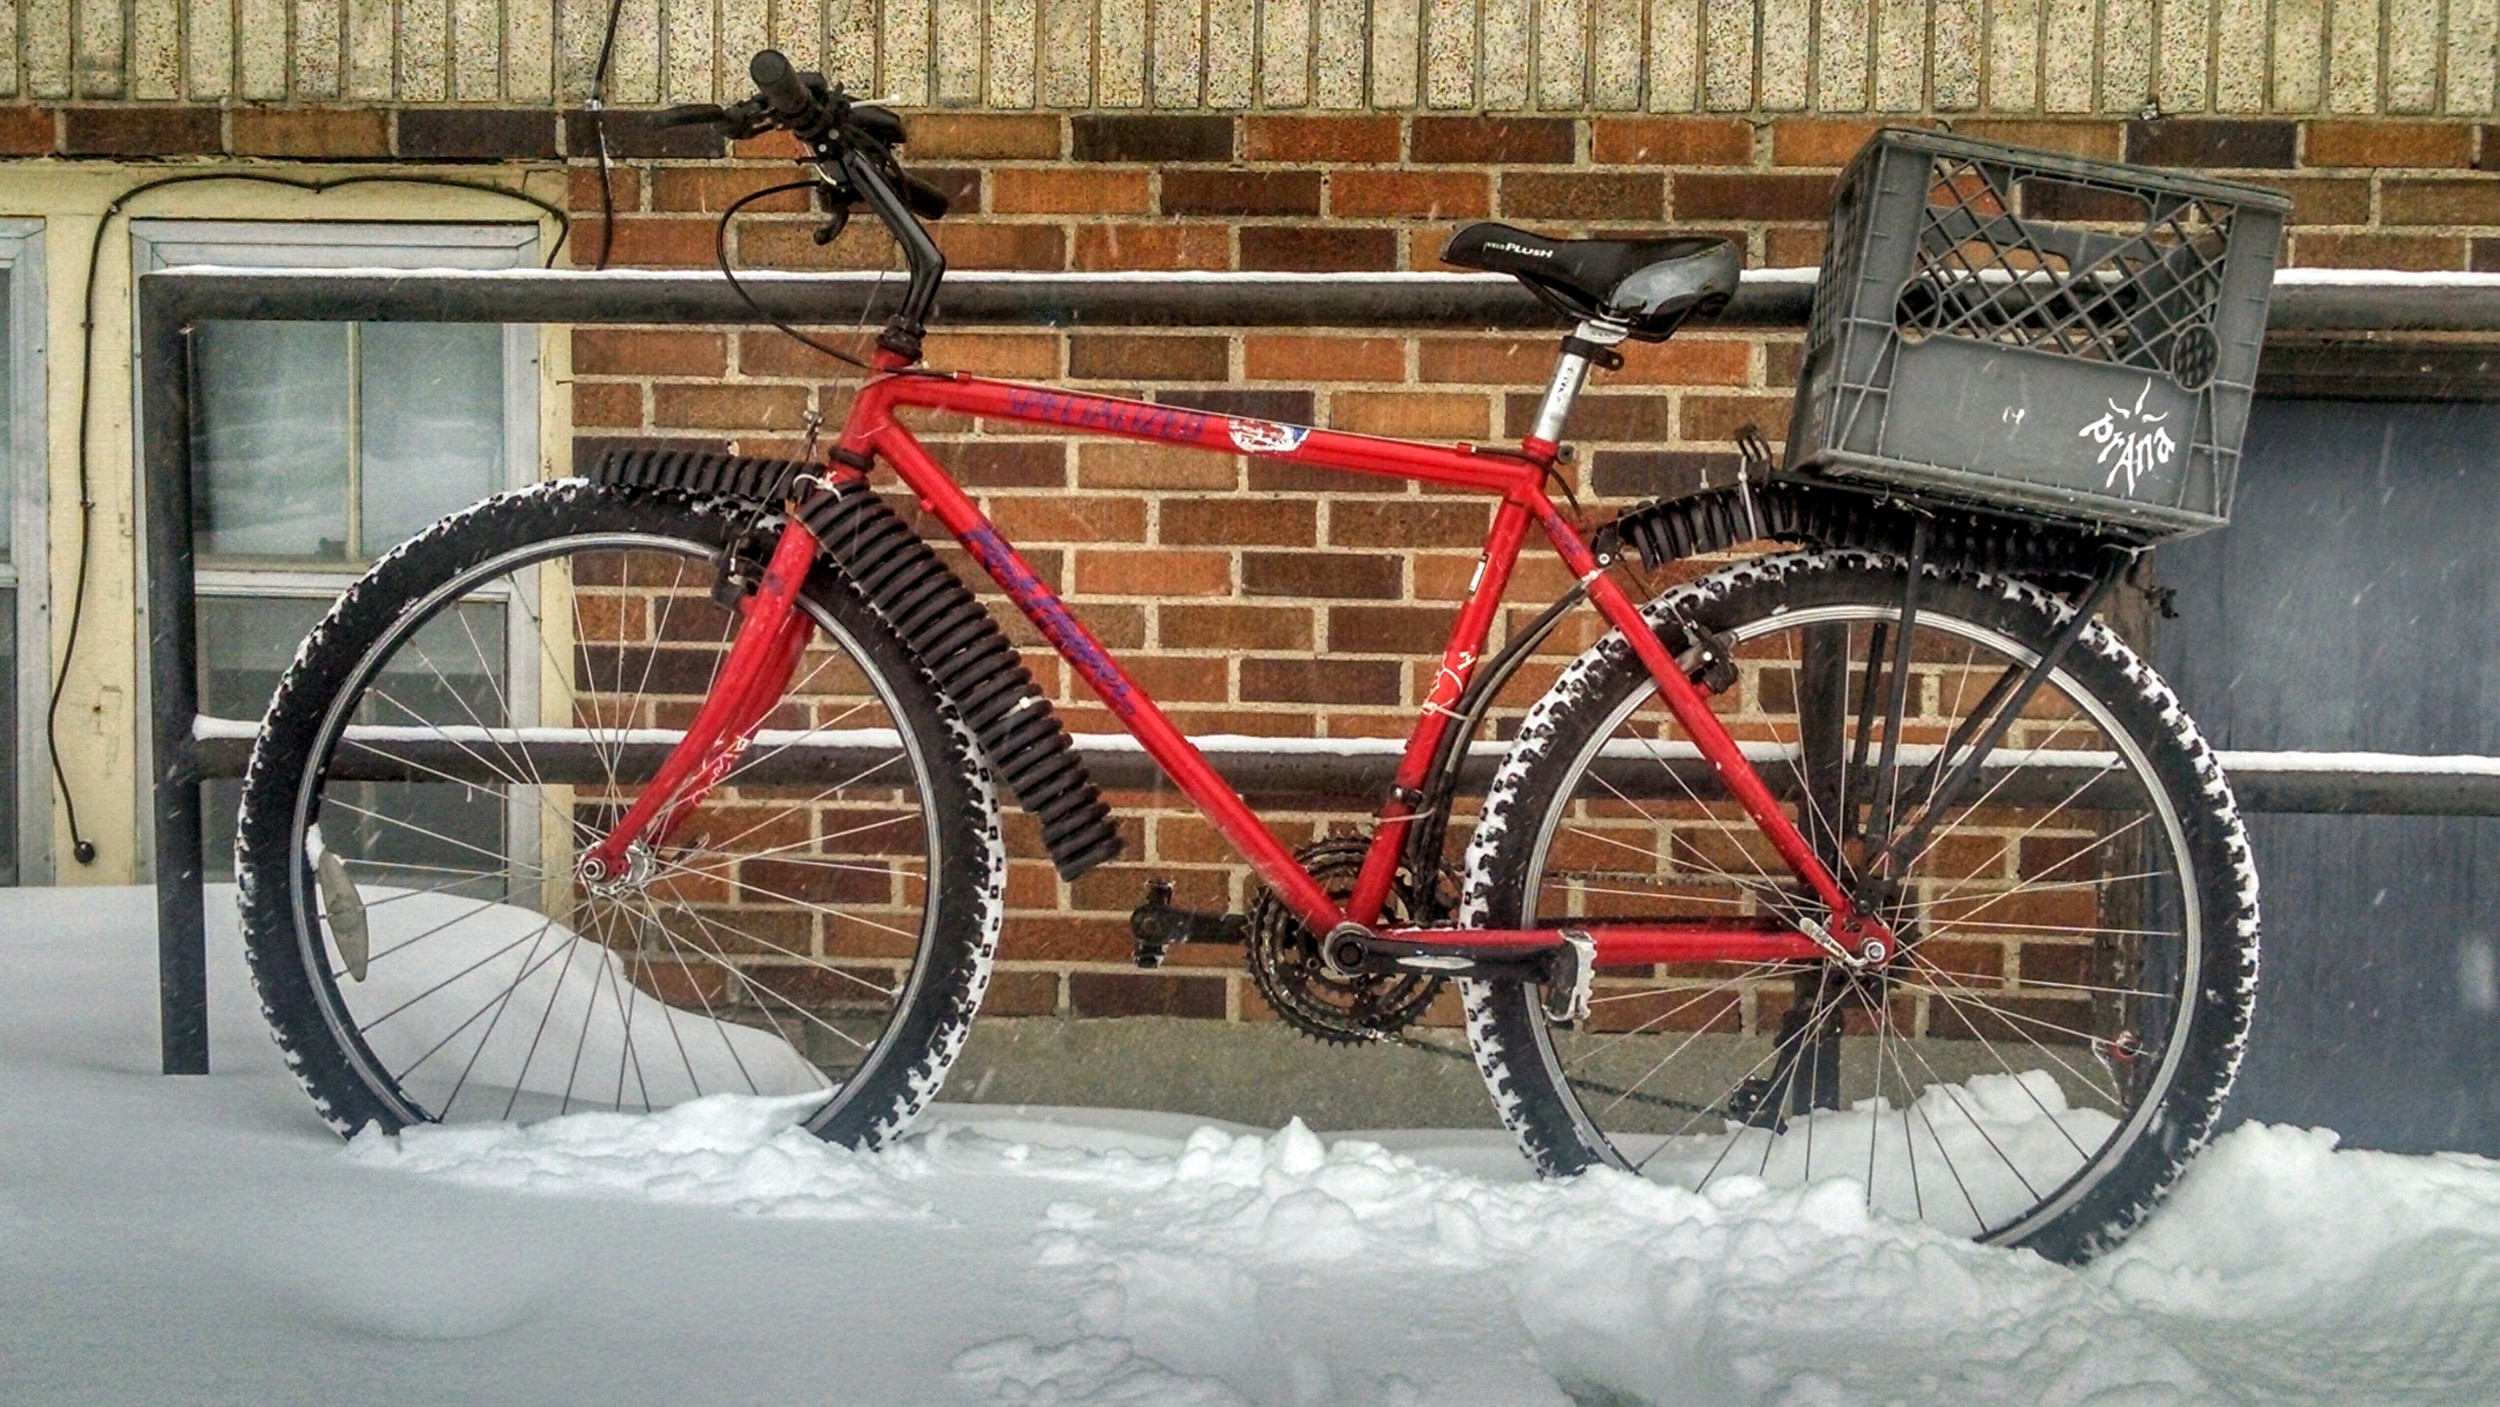 The low-budget approach to winter riding